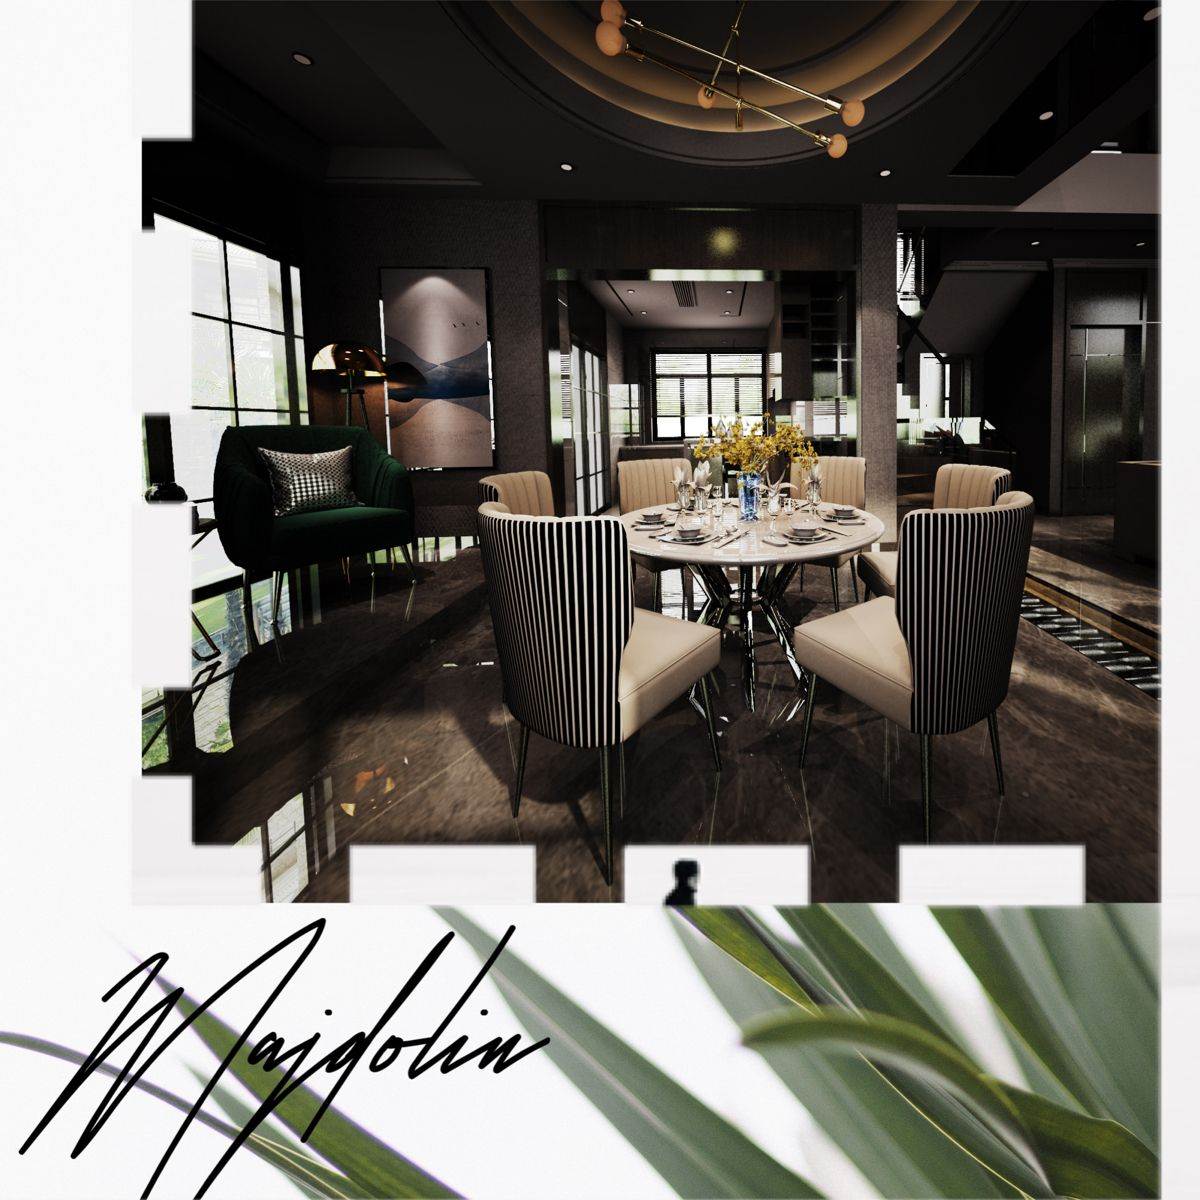 Dining room interior design inspired by nature #interior #interiordesignideas #interiordesignlivingroom #interiordesigner #diningroom #diningroomideas #diningroomdesign #diningroomdecorating #diningroomtable #diningroomdecor #interiorideas #design #designideas #greenliving #designsforlivingroom